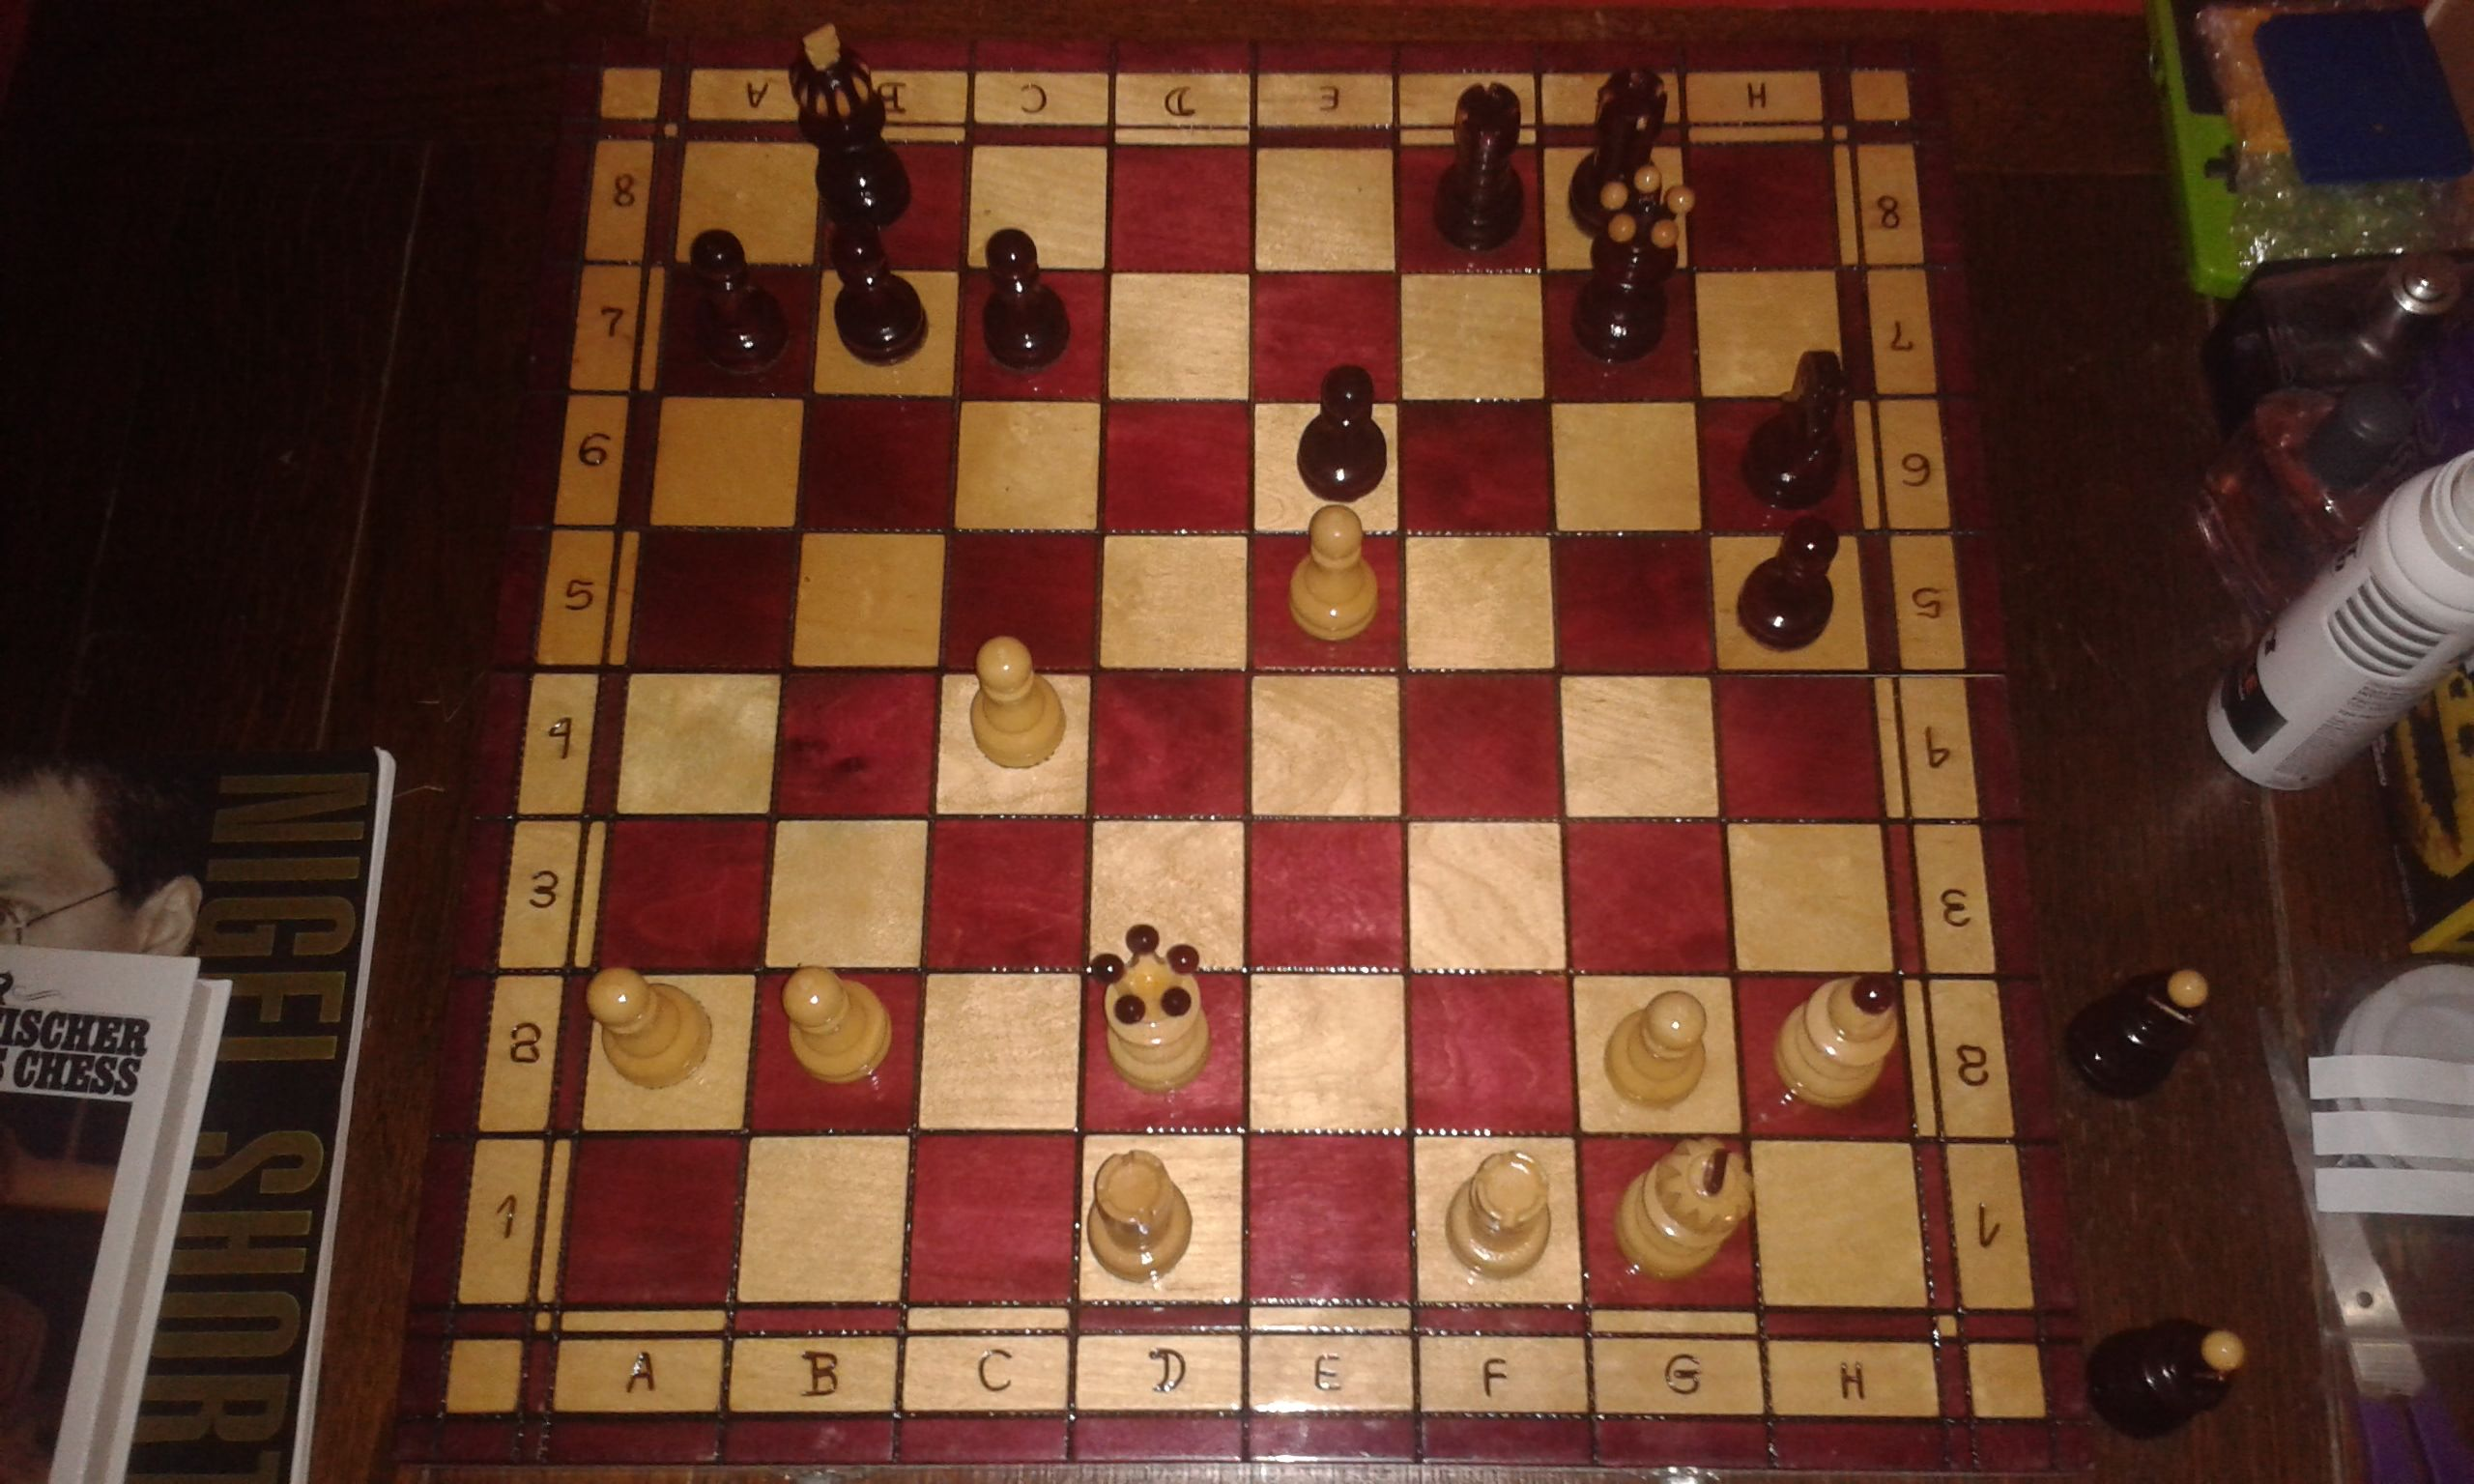 bobby fischer teaches chess puzzle help - Chess Forums - Chess.com